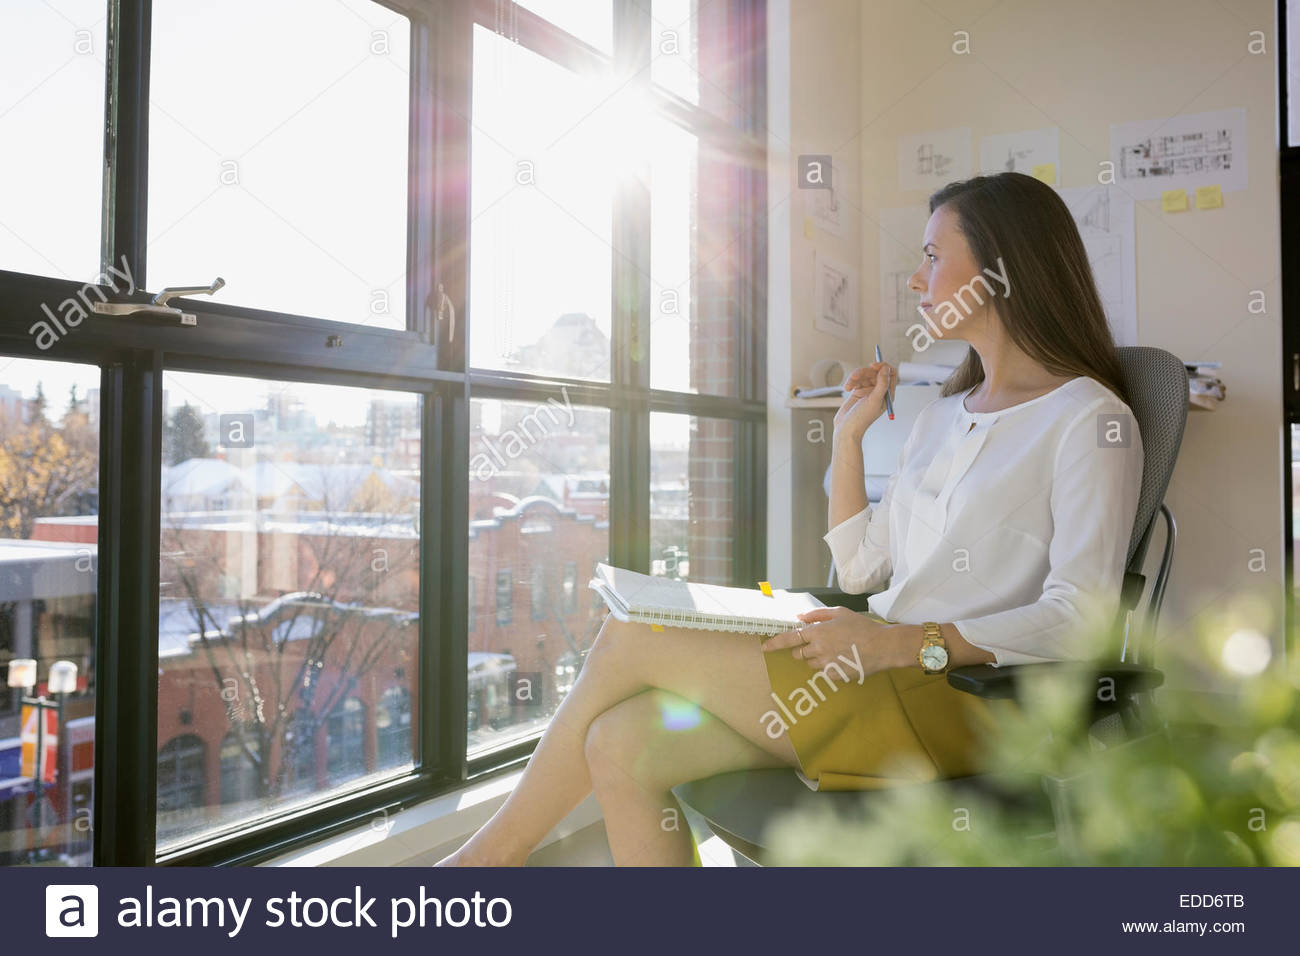 Pensive businesswoman looking out sunny office window - Stock Image